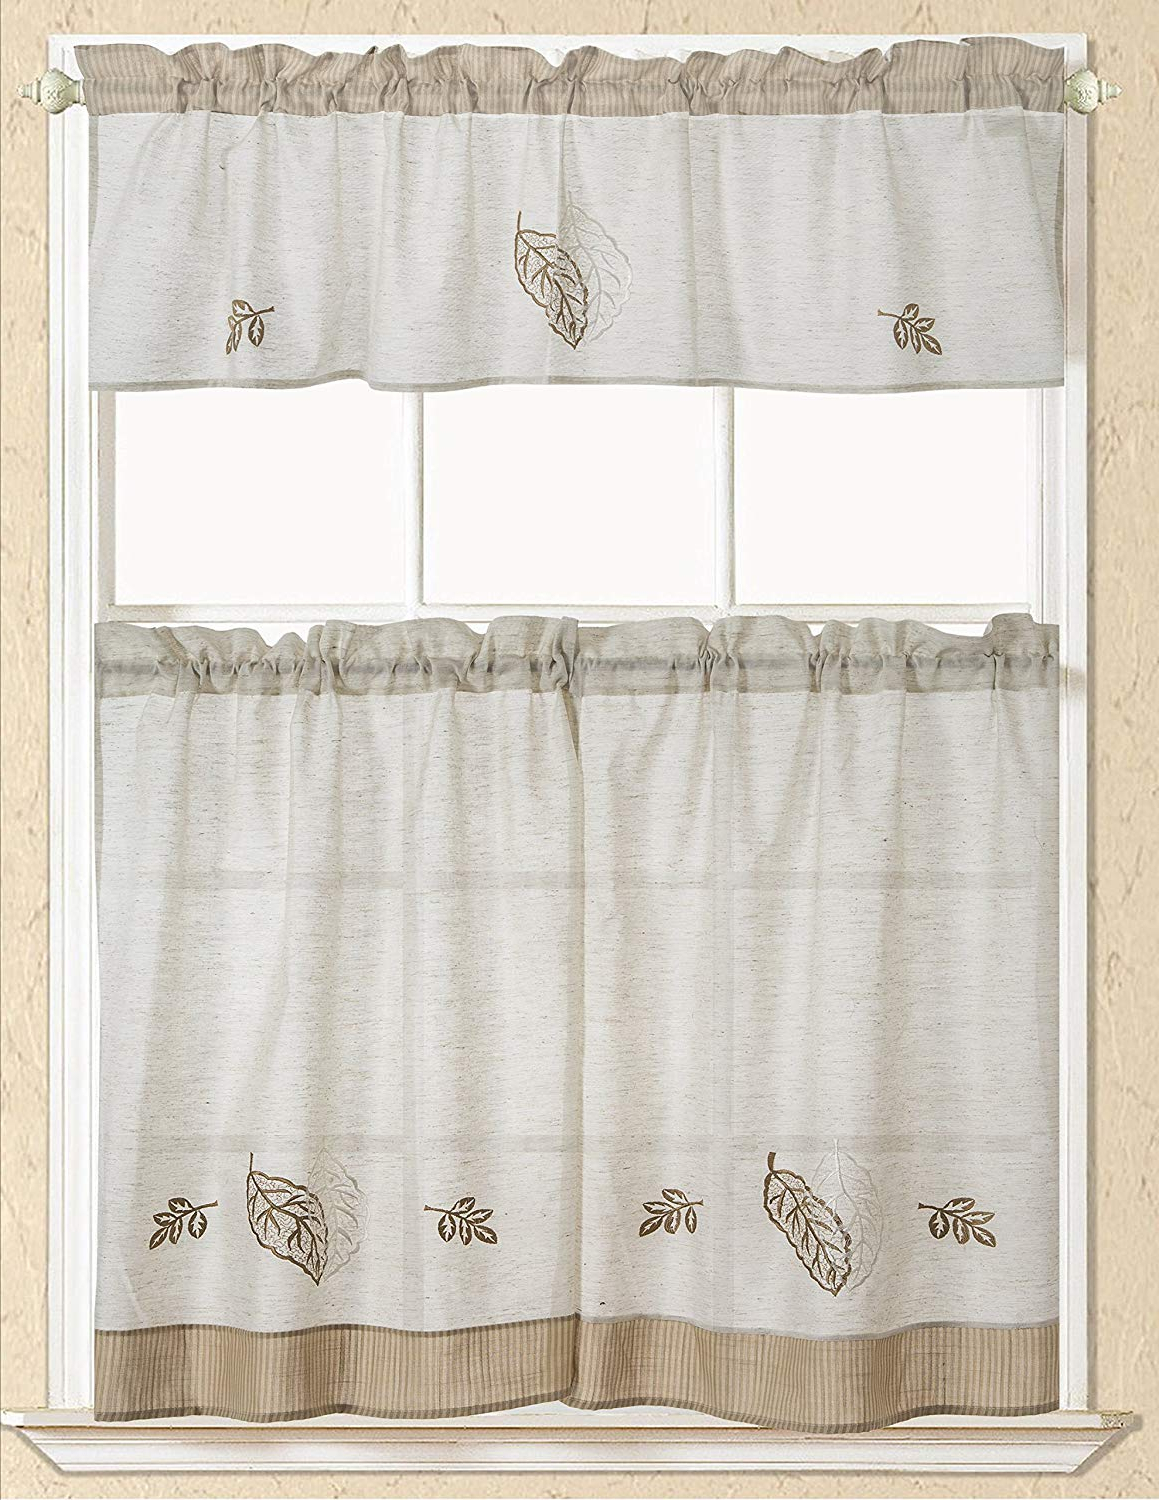 Newest Touch Of Spring 24 Inch Tier Pairs Throughout Rt Designers Collection Rt Designers Spring Rustic Leaf Embroidered Kitchen Curtain, 1 Straight Valance 58 Inch X 15 Inch & 2 Tiers 30 Inch X 36 Inch, (View 8 of 20)